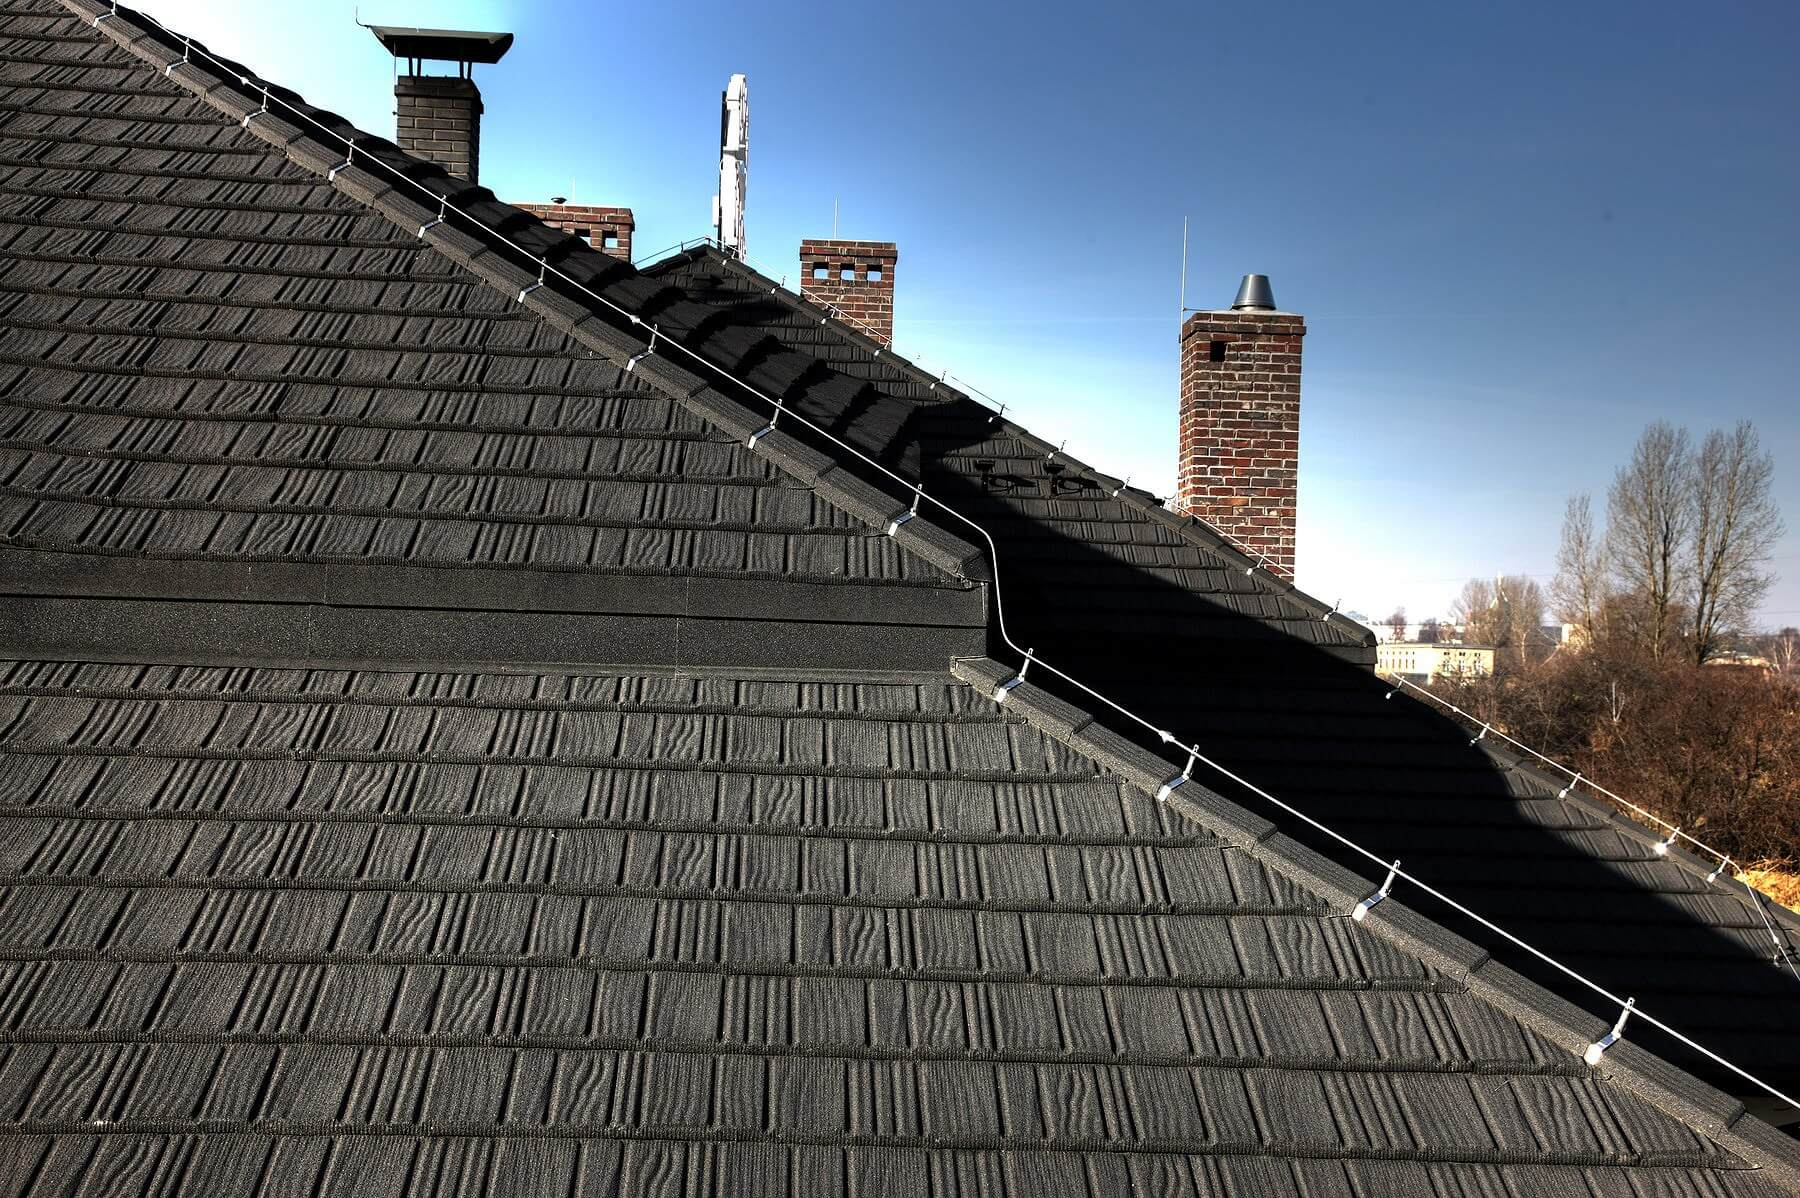 Metal Tile Roof-Spring Hill Metal Roofing Elite Contracting Group